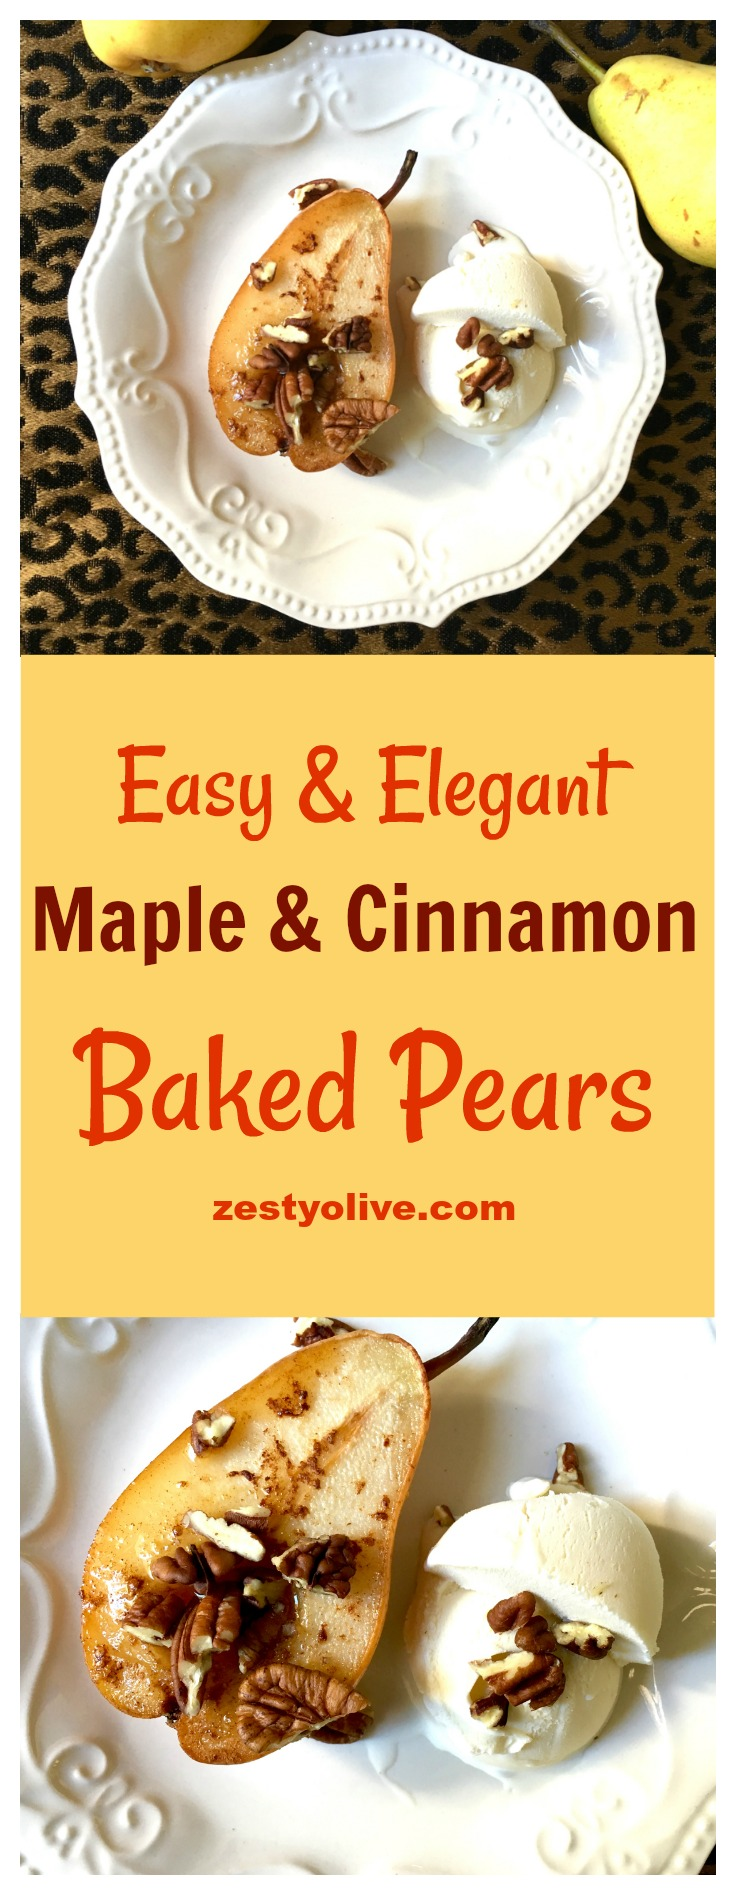 Maple and Cinnamon Baked Pears, an easy and elegant fruit dessert.